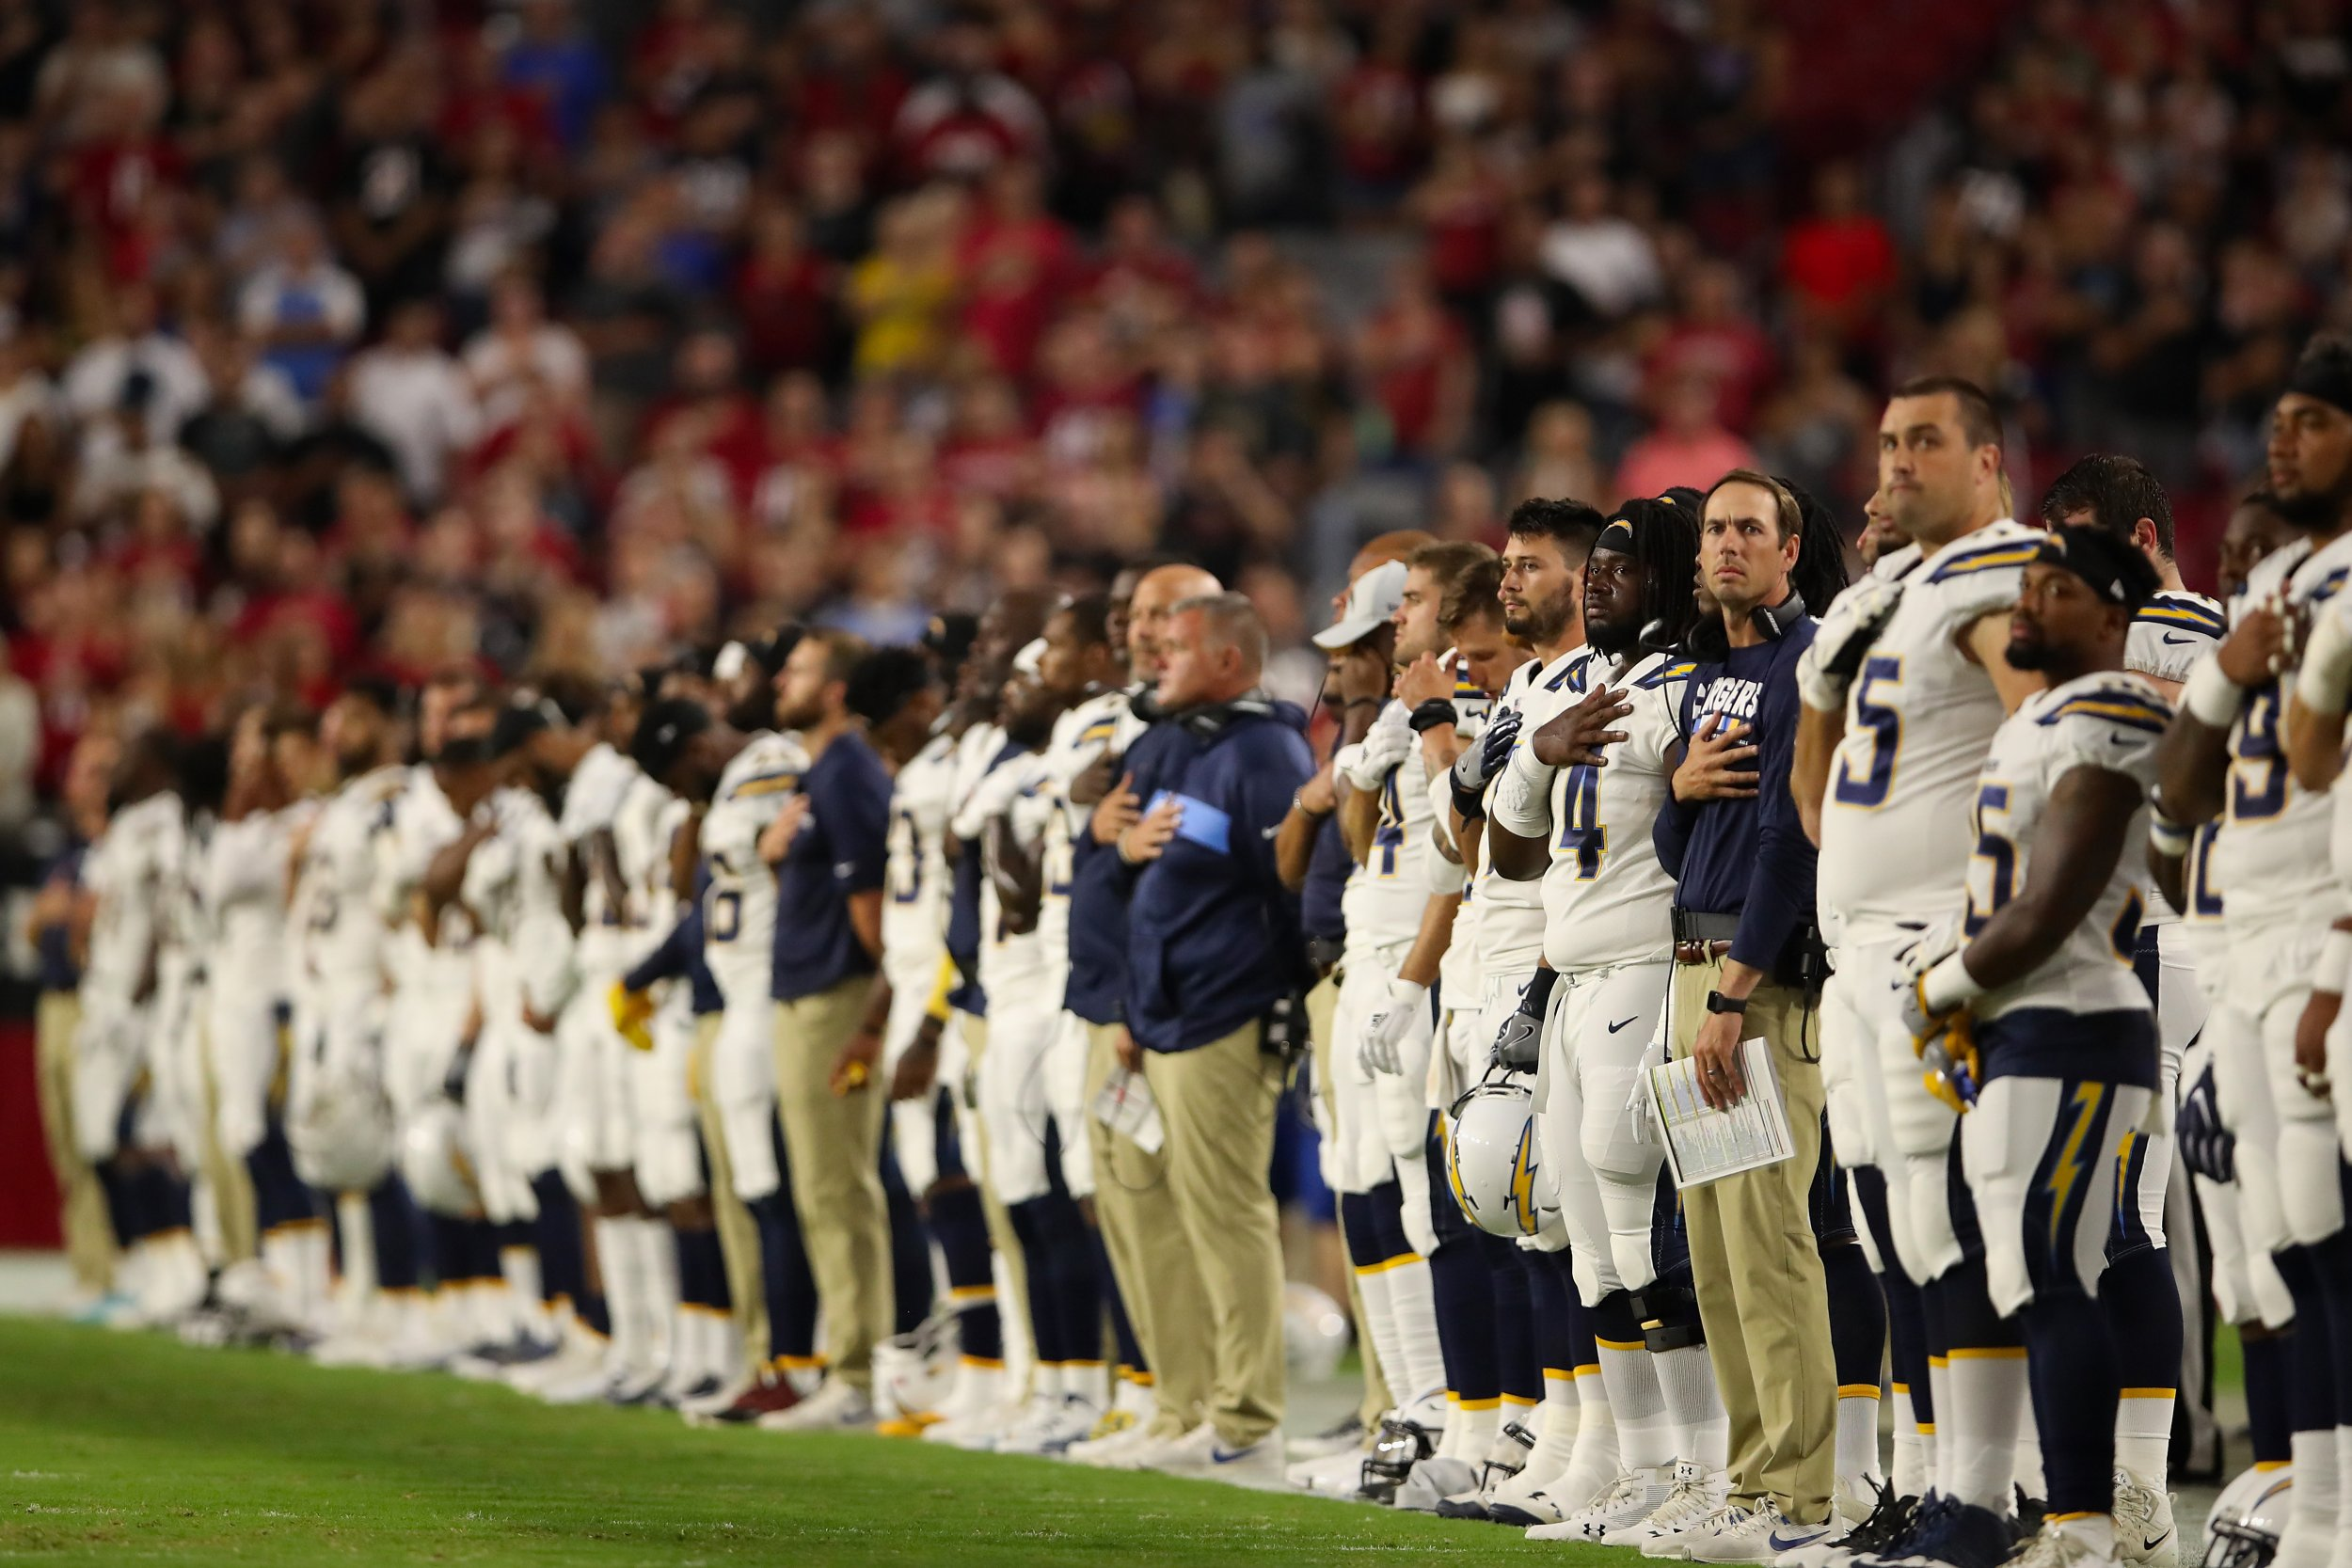 a6a87260b29 GettyImages-1015364278 The Los Angeles Chargers stand attended for the national  anthem before the preseason NFL game against the ...